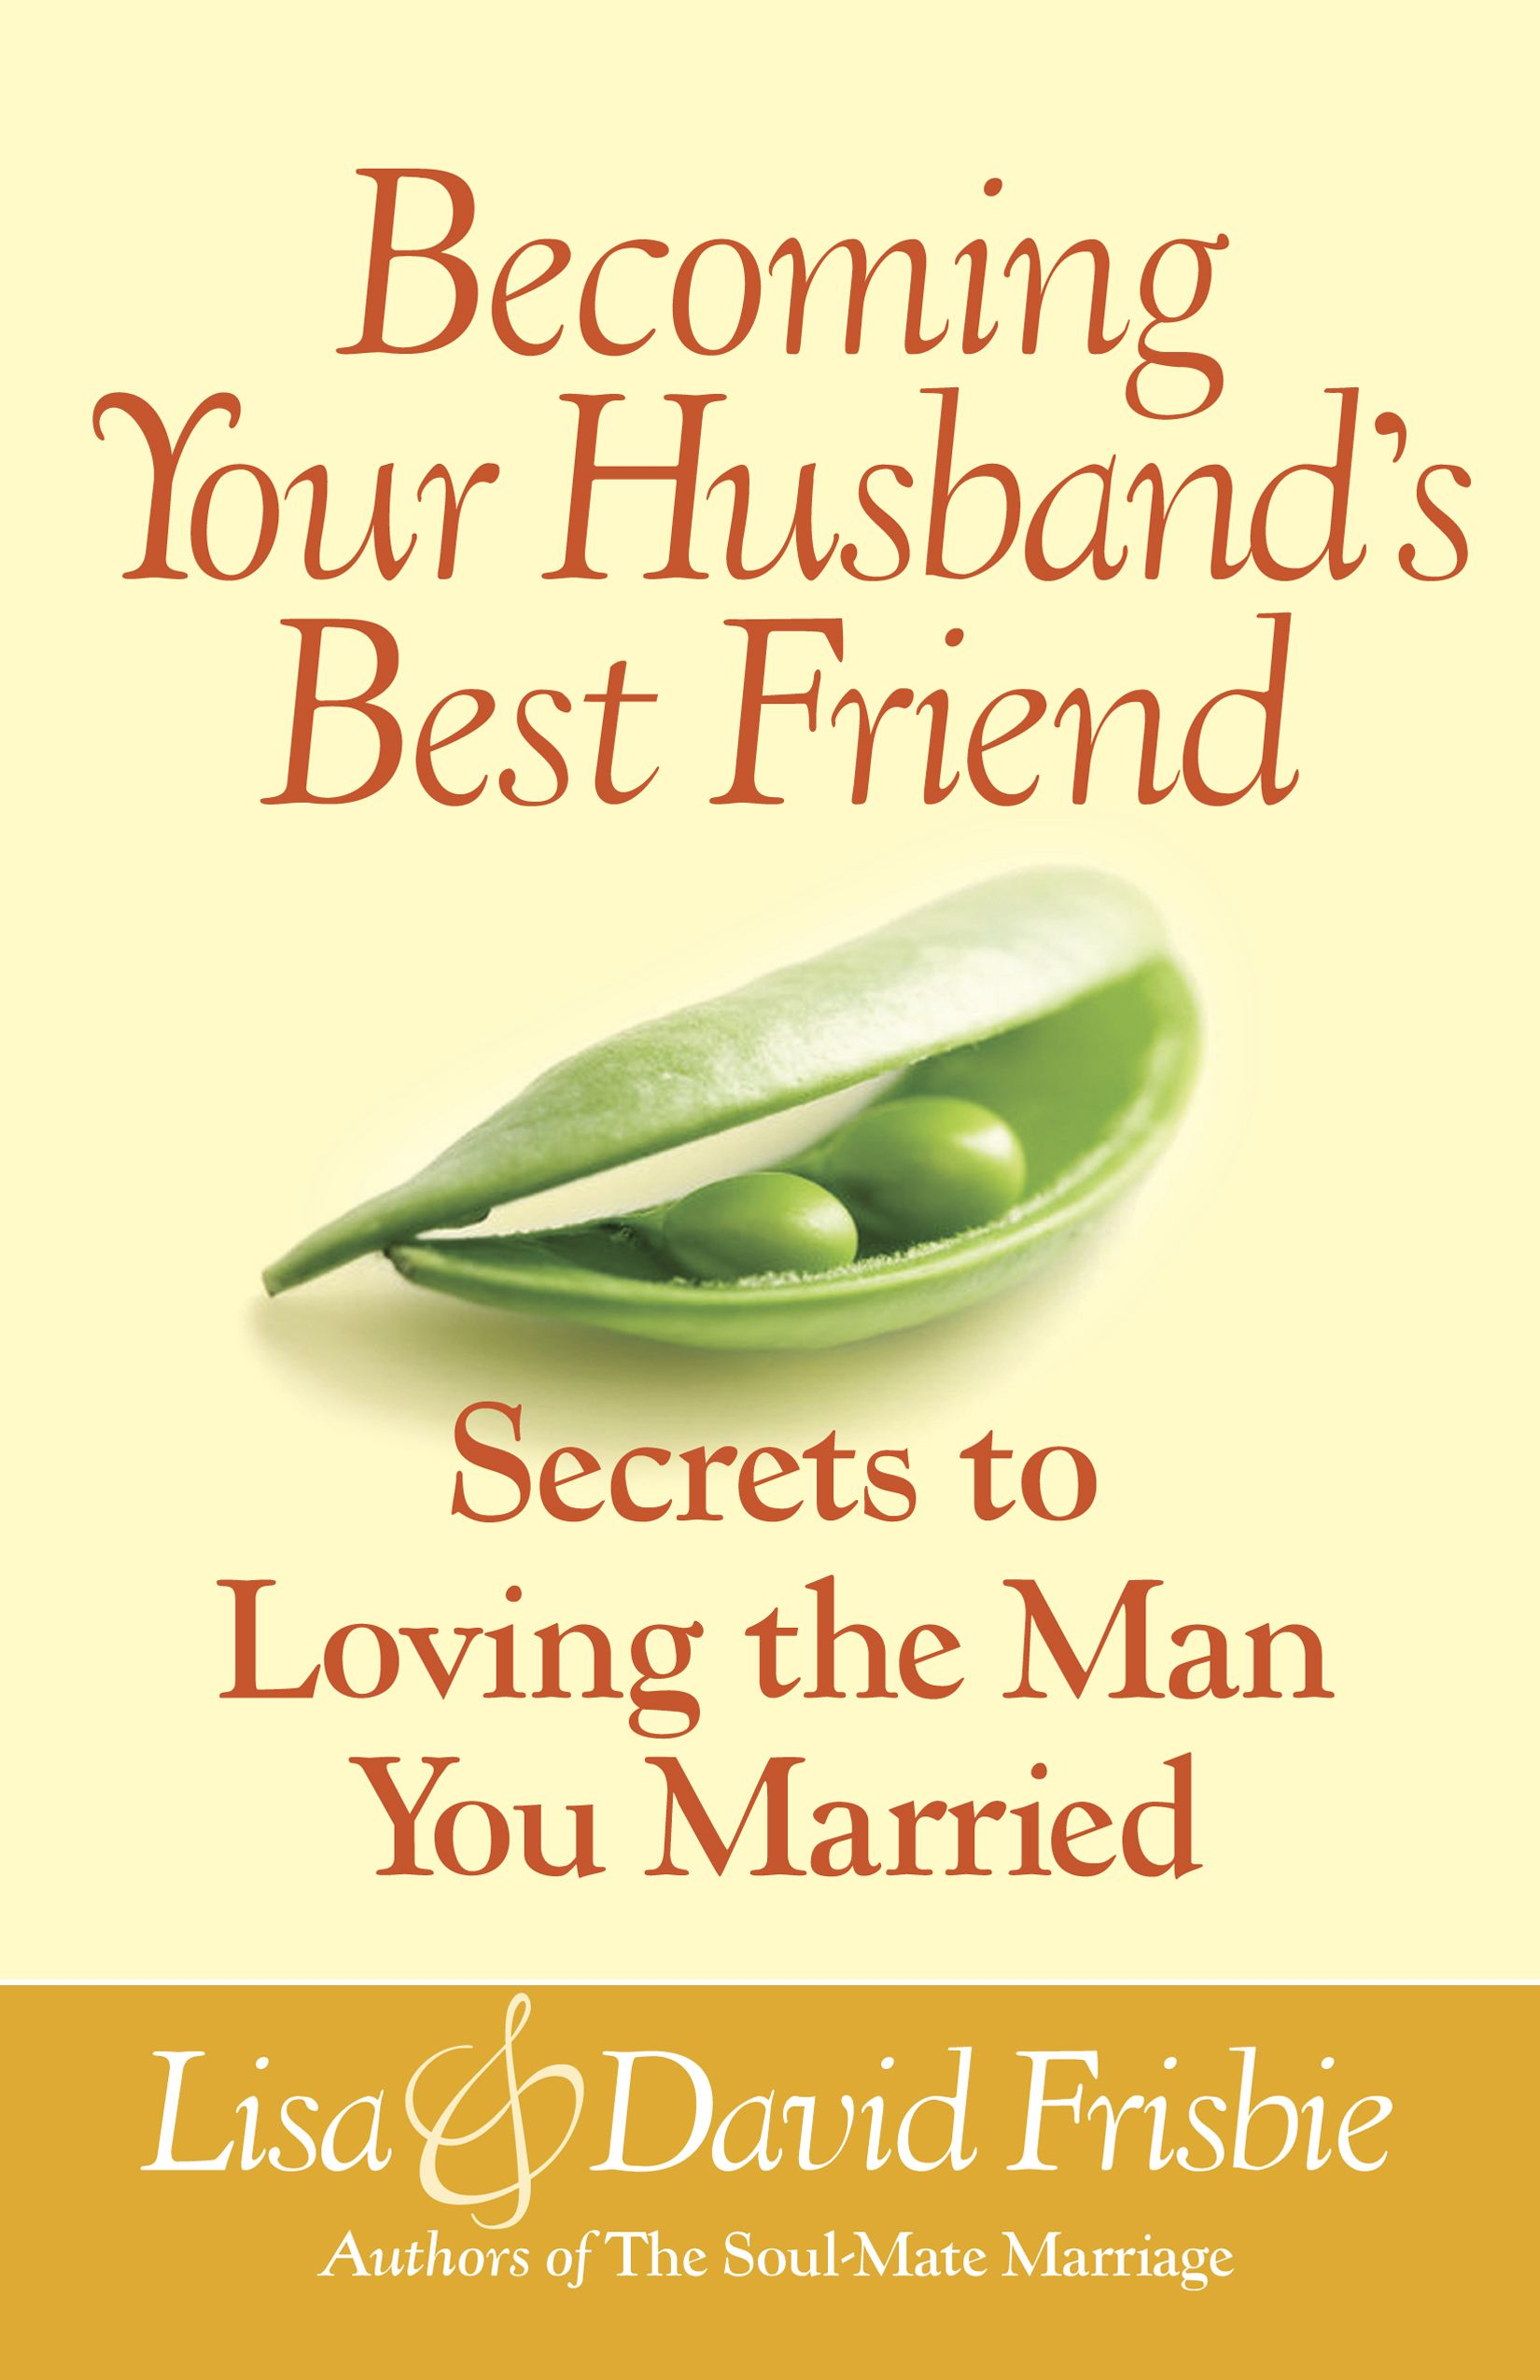 Becoming Your Husband's Best Friend